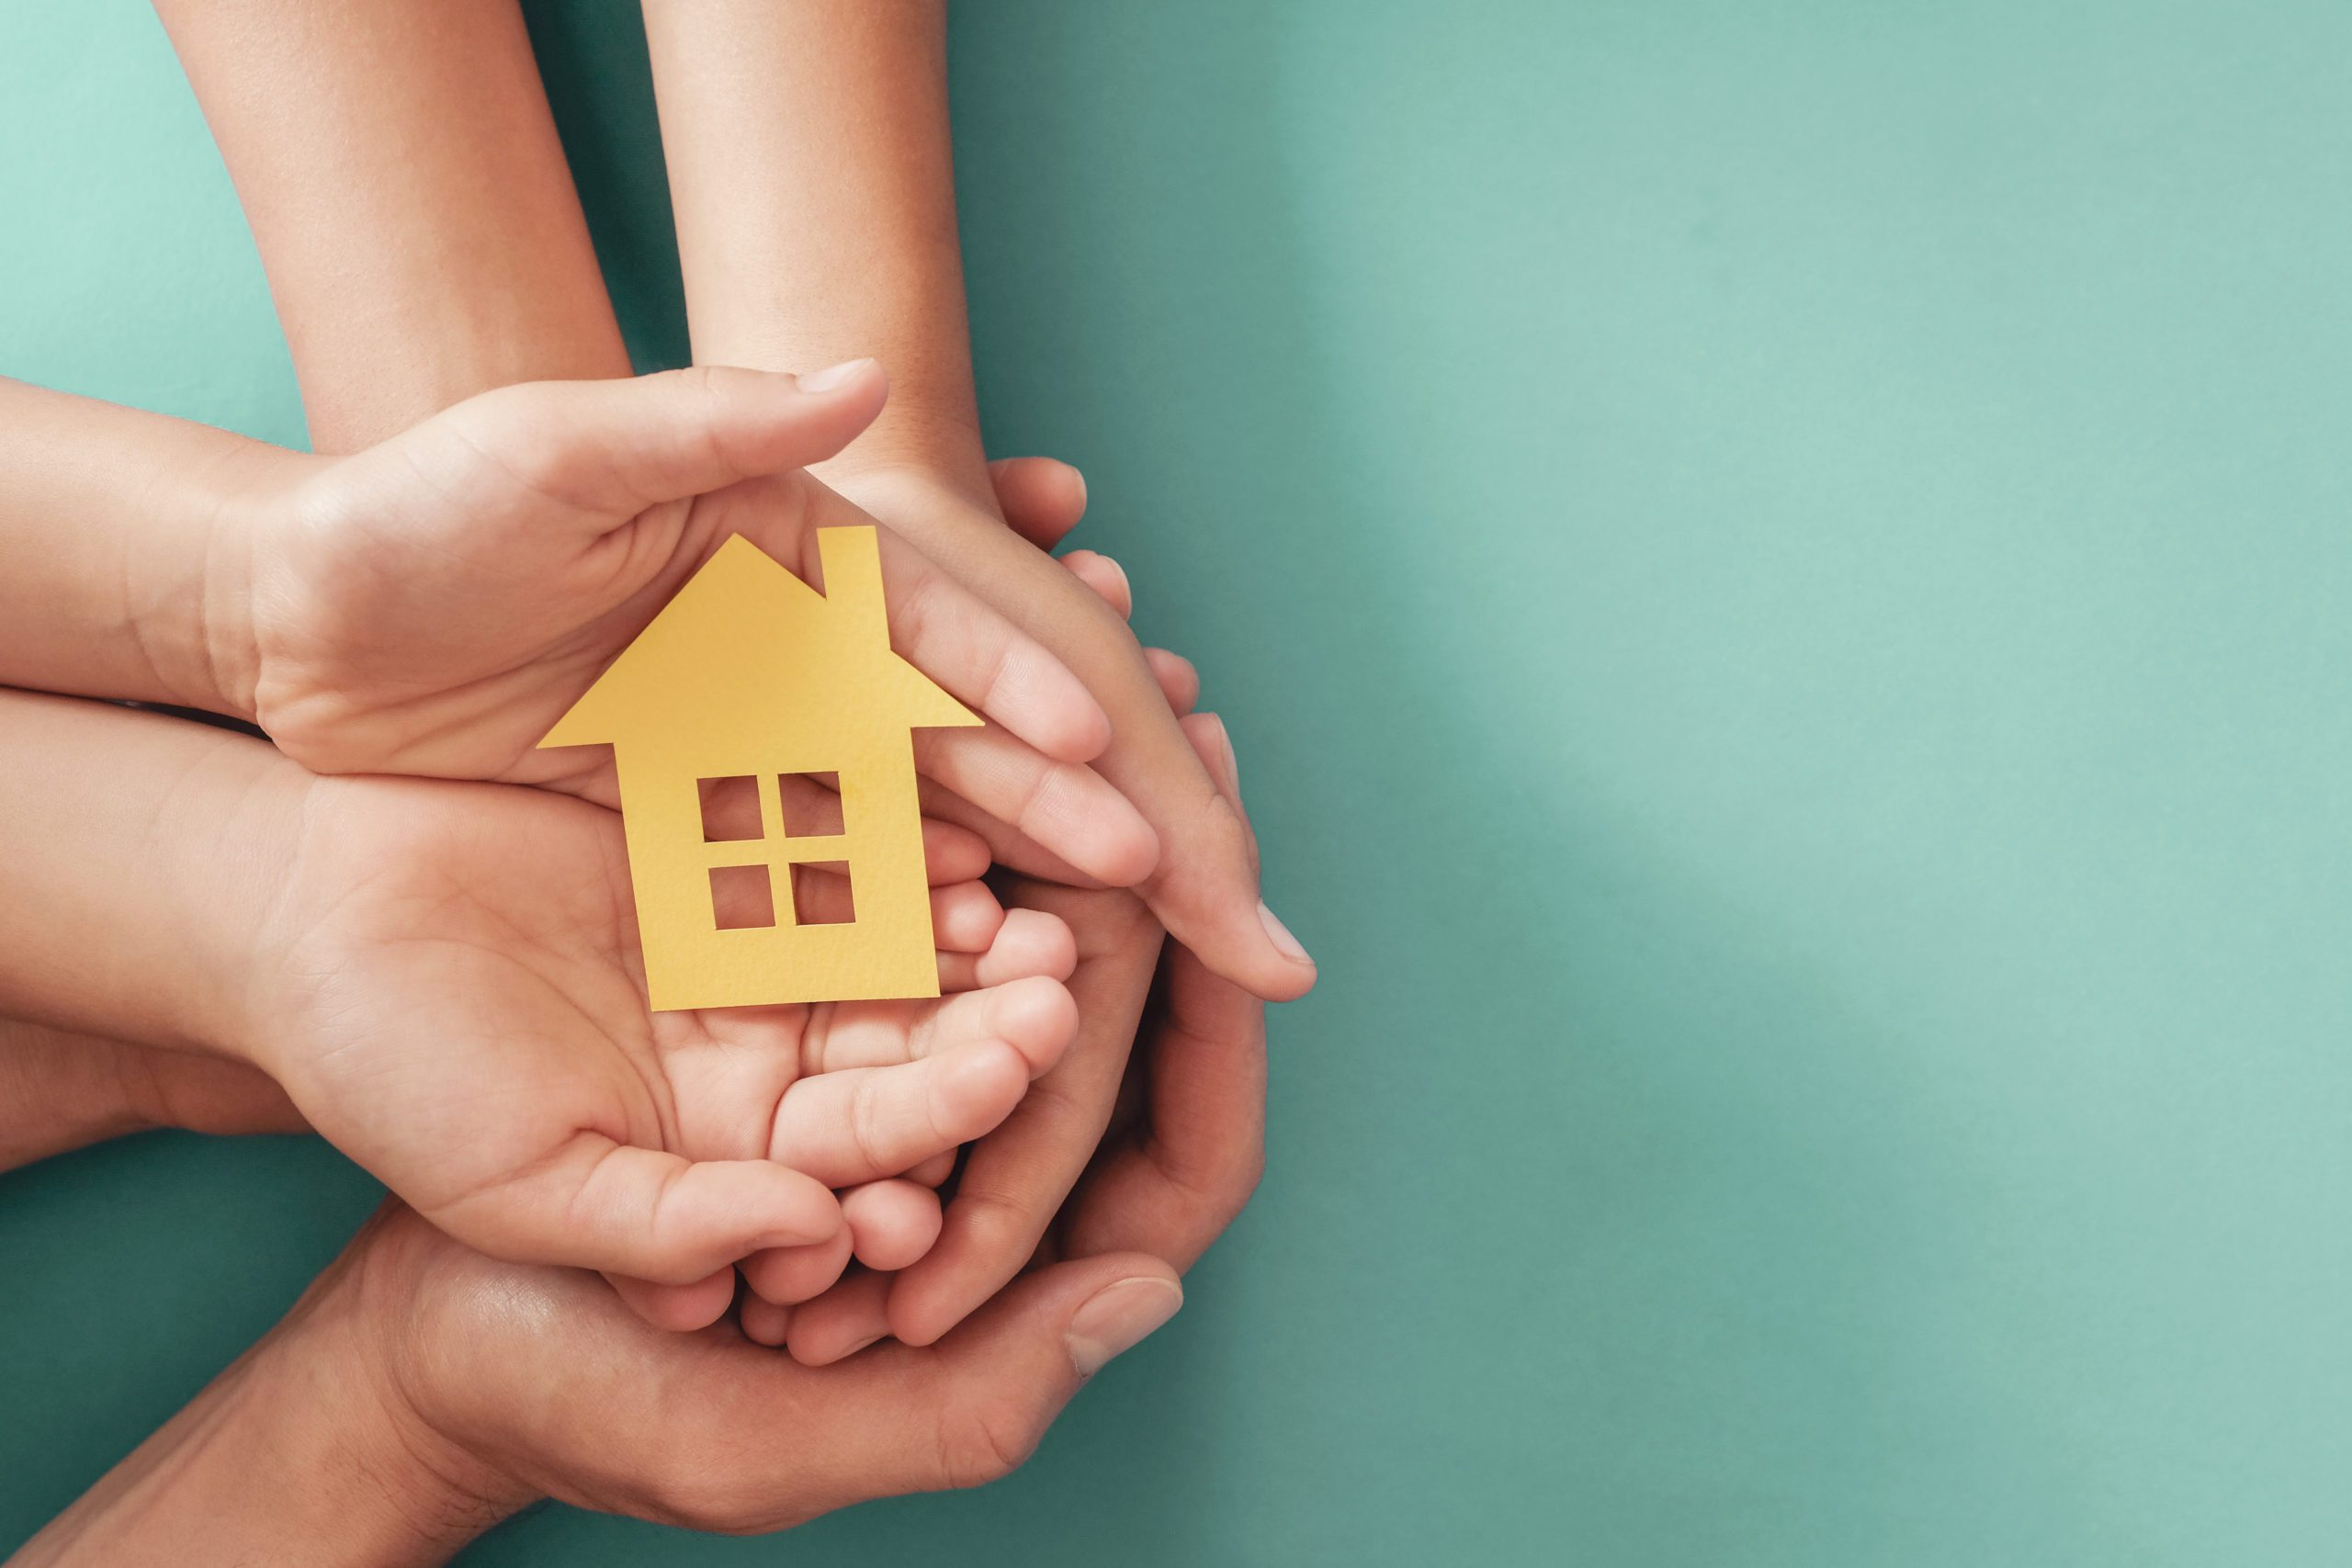 hands holding a yellow cut out house on a blue background